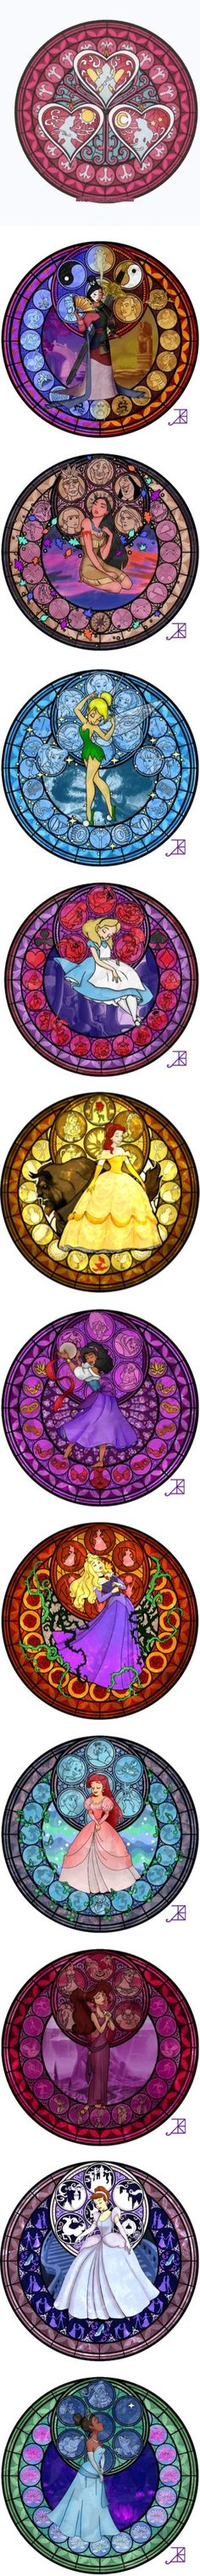 Disney princess stained glass by shygirl1229 - I can't decide how I feel about these.